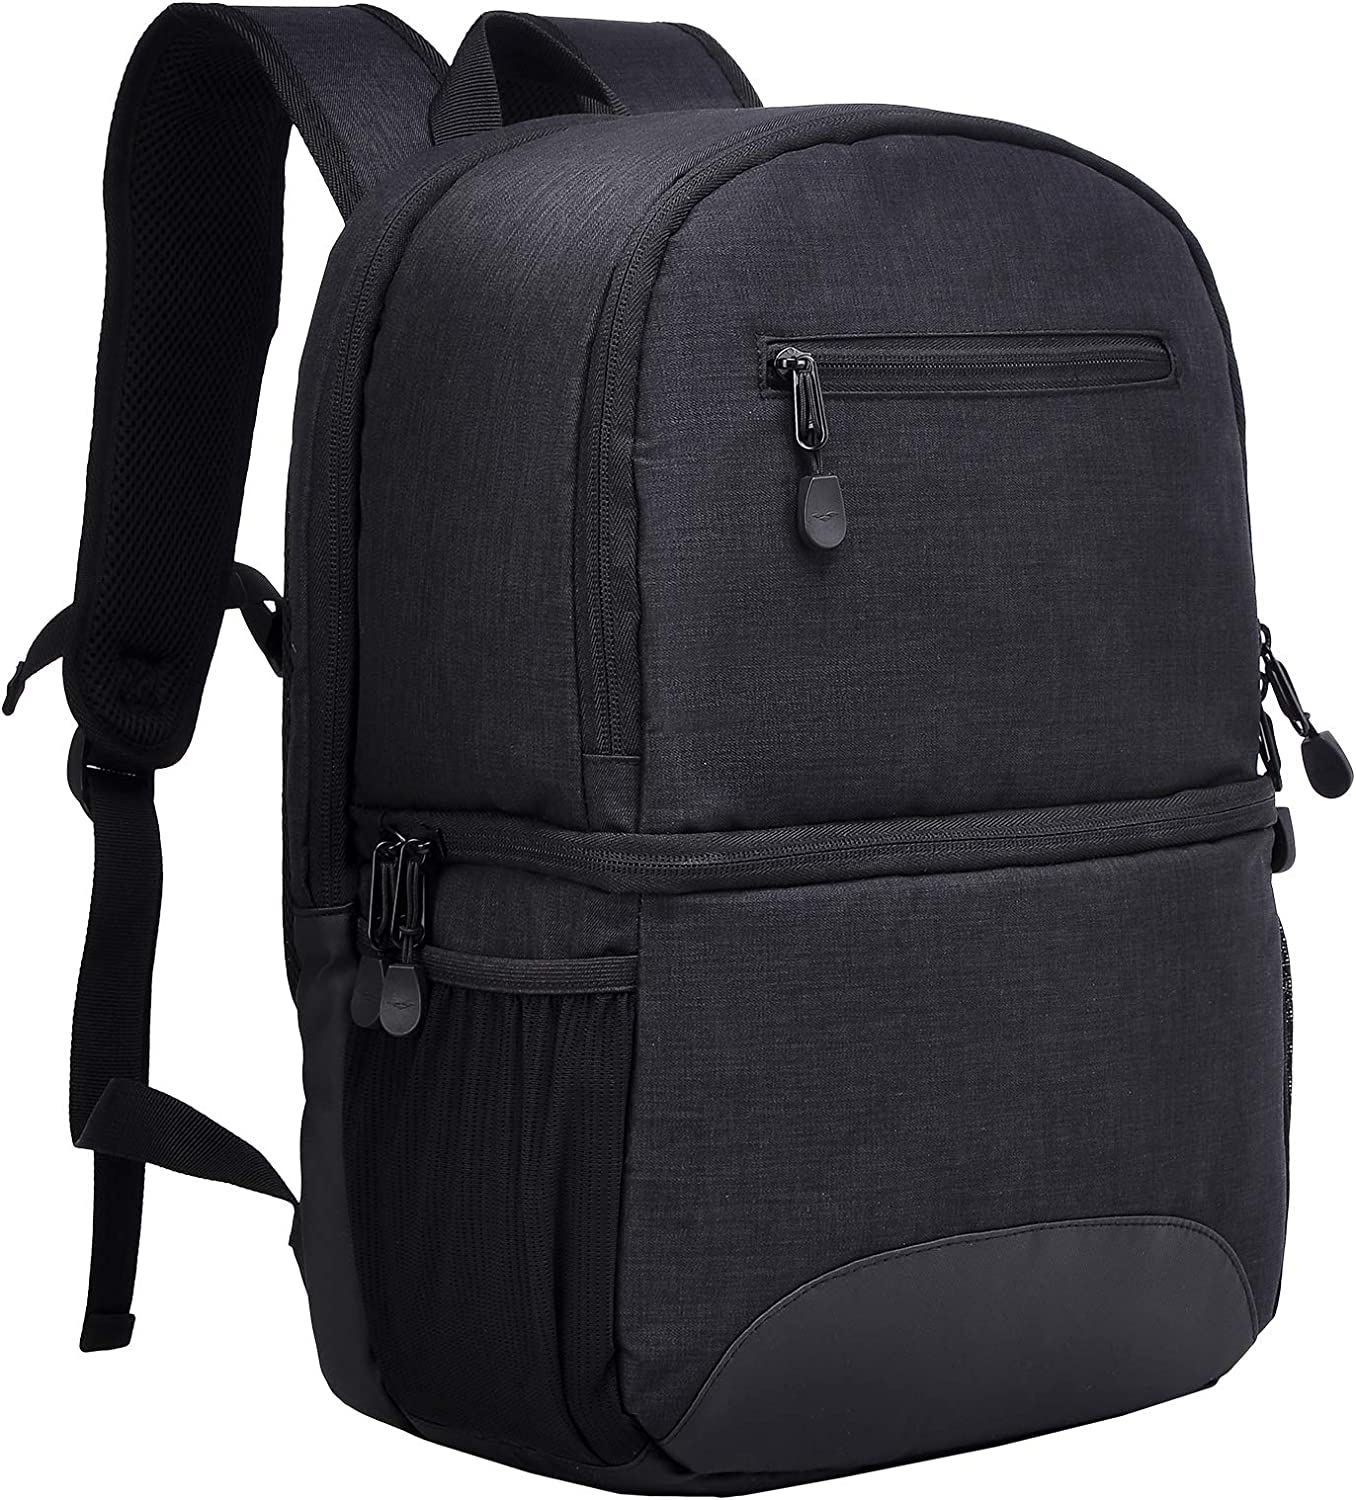 MIER 2 in 1 Insulated Cooler Backpack for Men Women Hiking Daypack with Lunch Compartment,Double Deck,Leakproof,Black